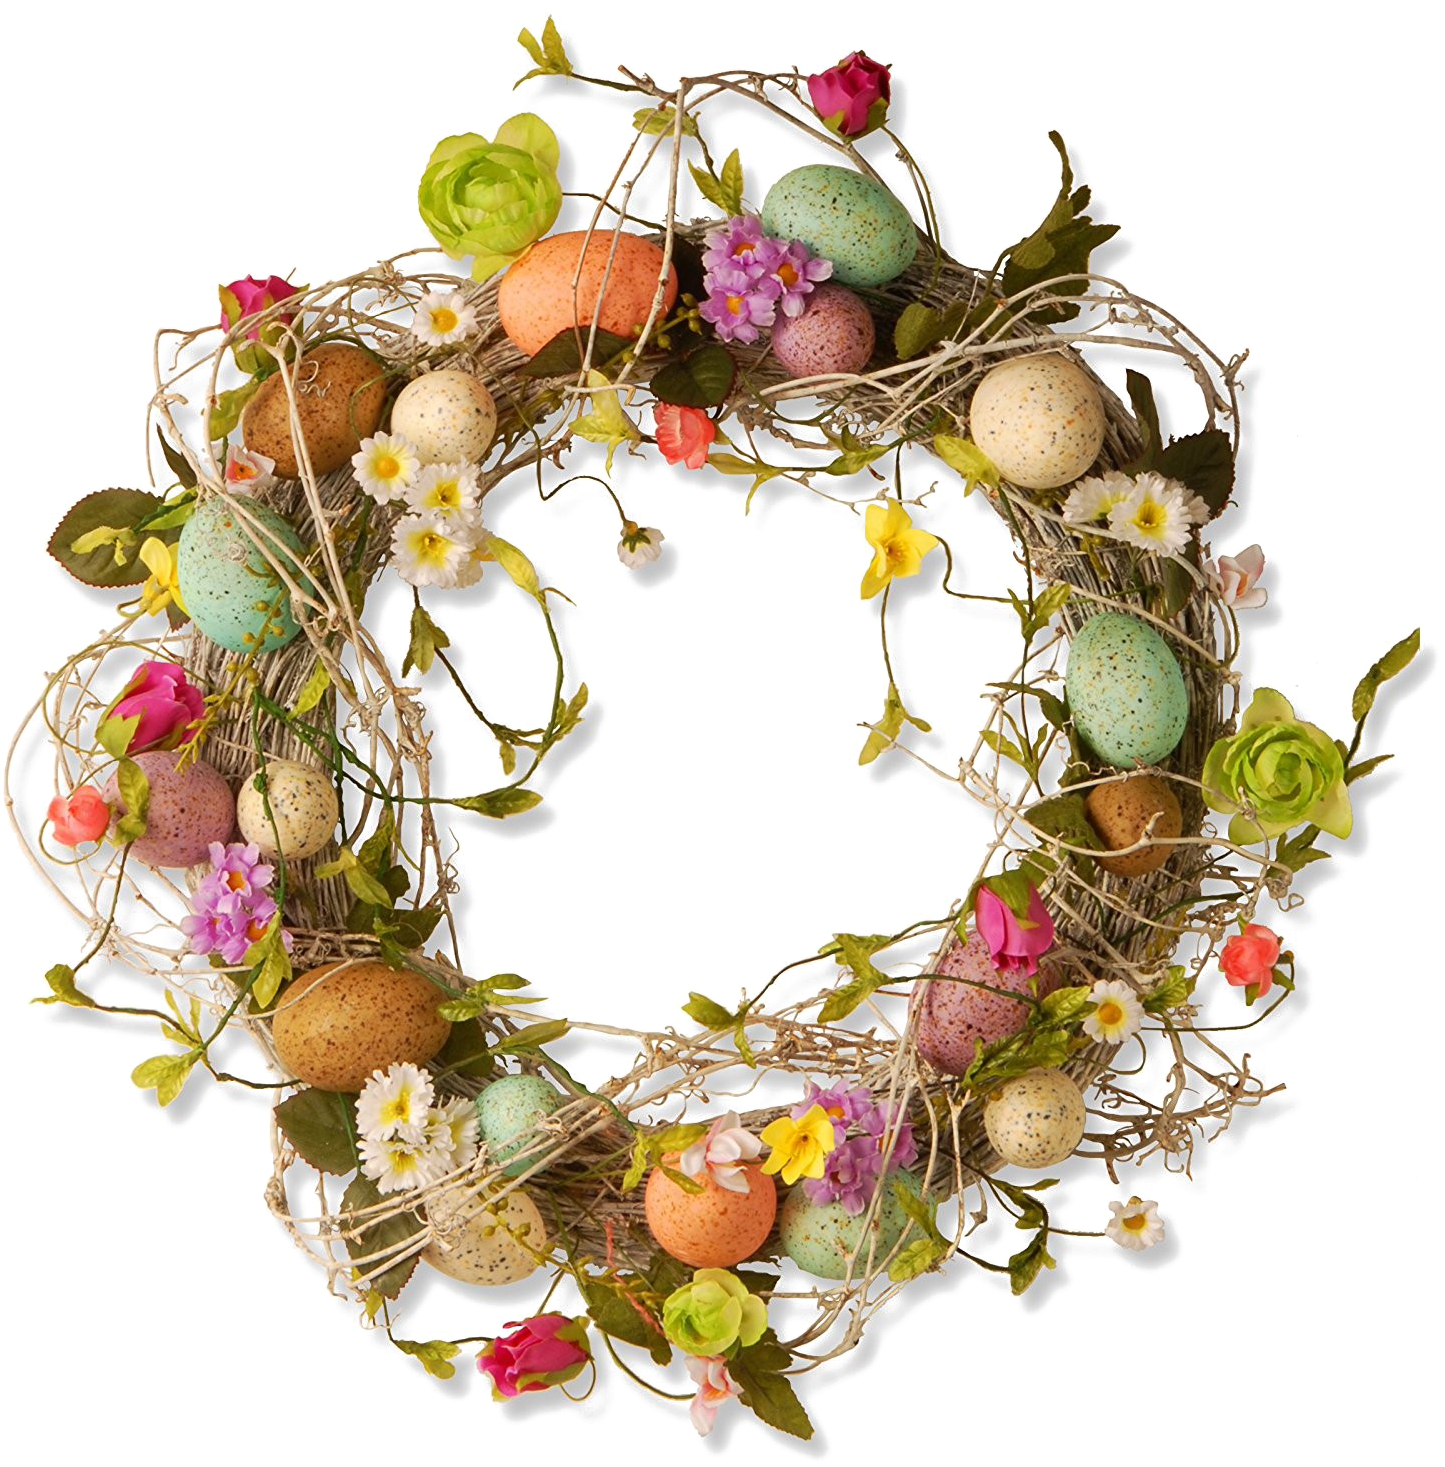 christmas wreath transparent background png - Jpg Bunny ...